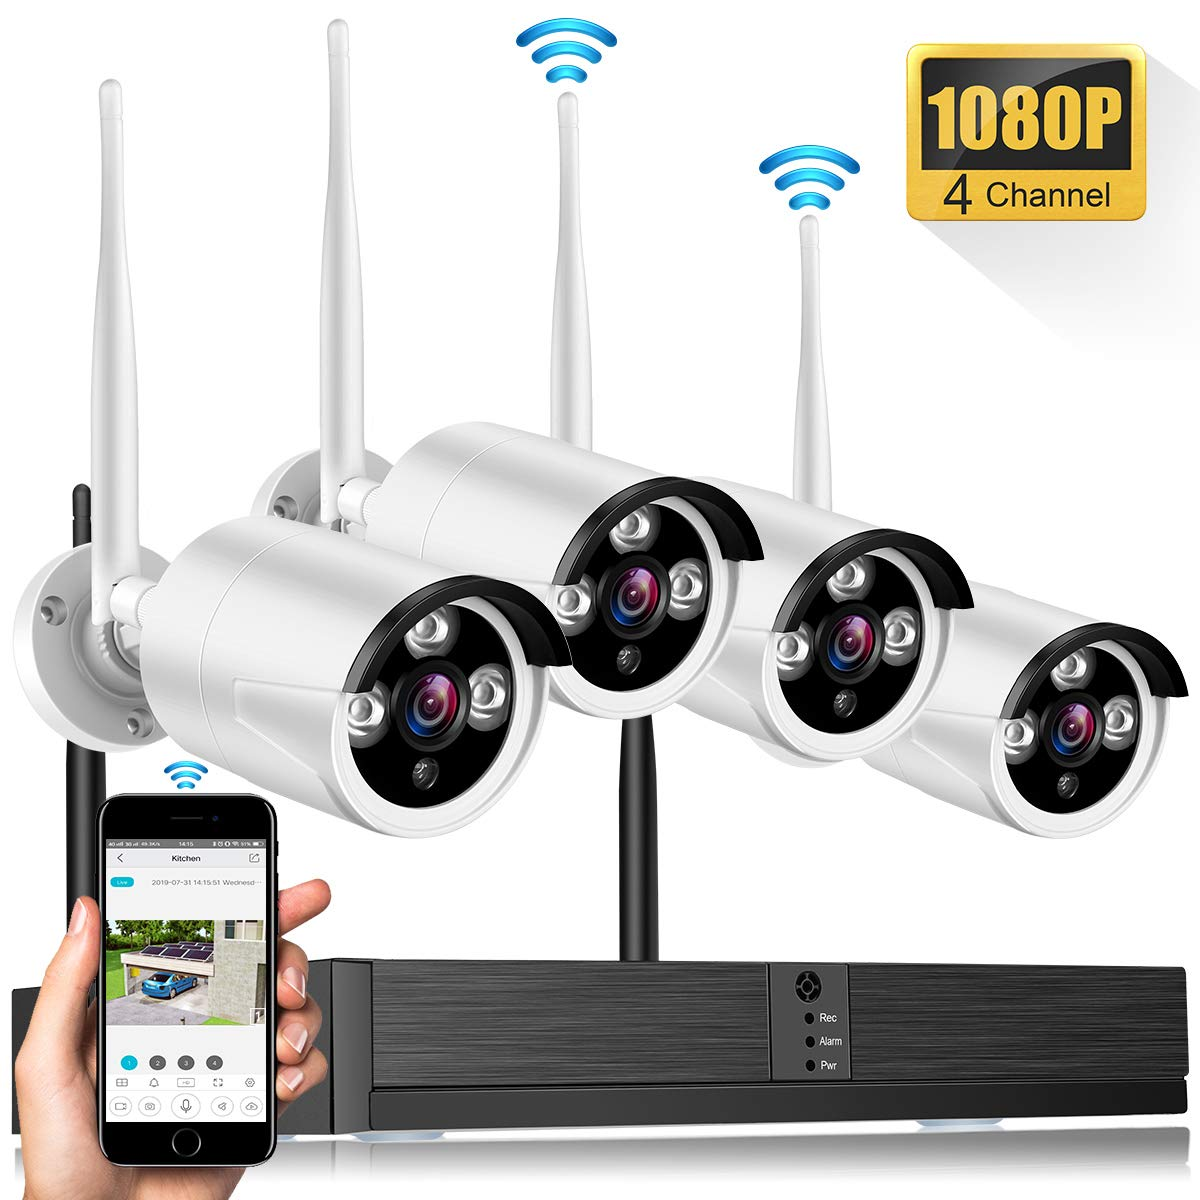 Wireless Security Camera System, Network Video Recorder Camera Working Range of 500 FT,4CH 1080P NVR 4Pcs H.265 2MP Indoor Outdoor WiFi Surveillance Cameras, Night Vision, Easy Remote View, No HDD